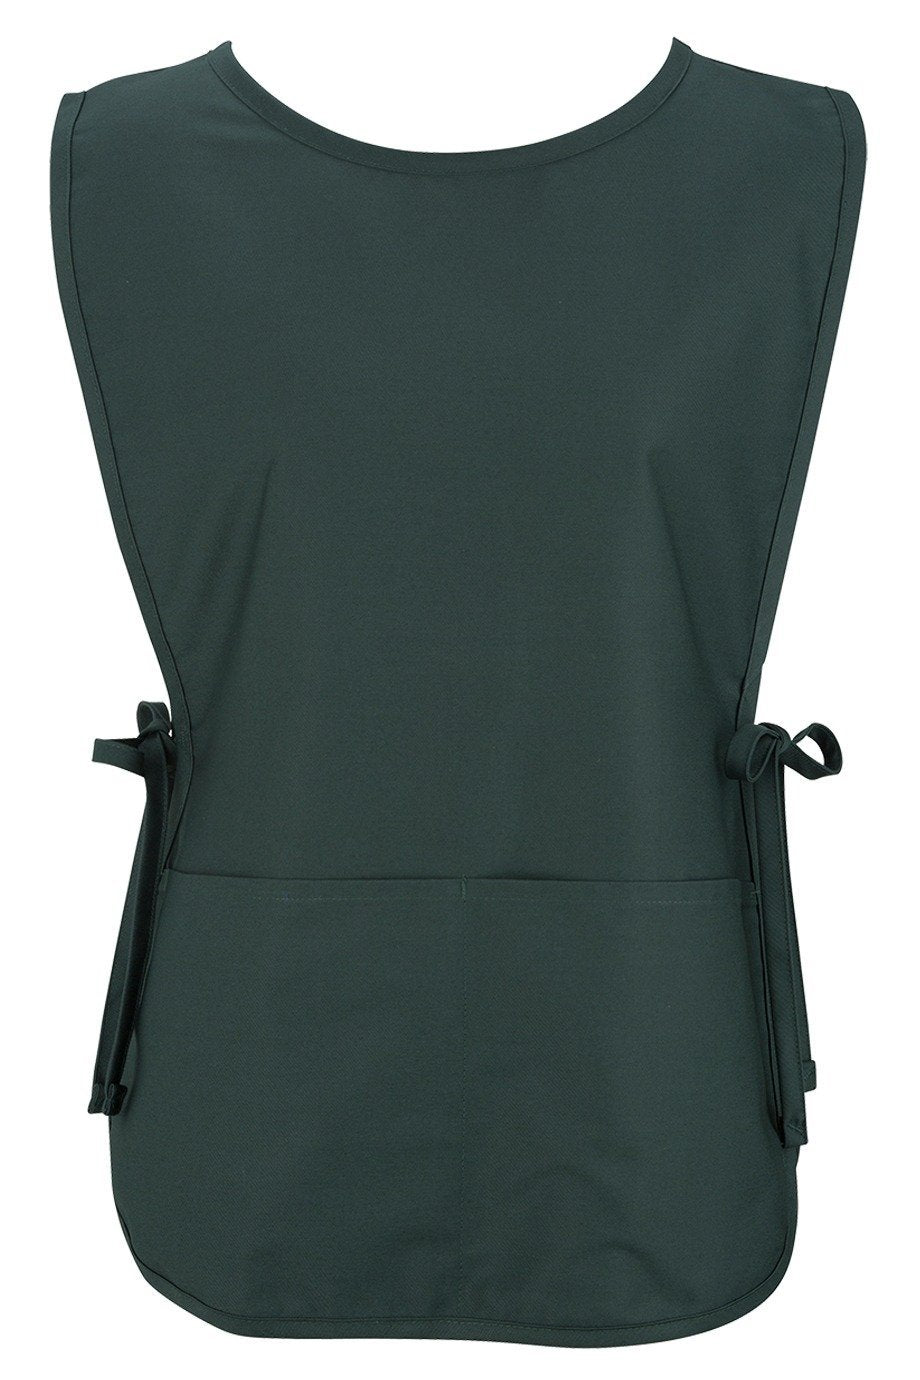 Hunter Cobbler Apron (Divided Pocket)